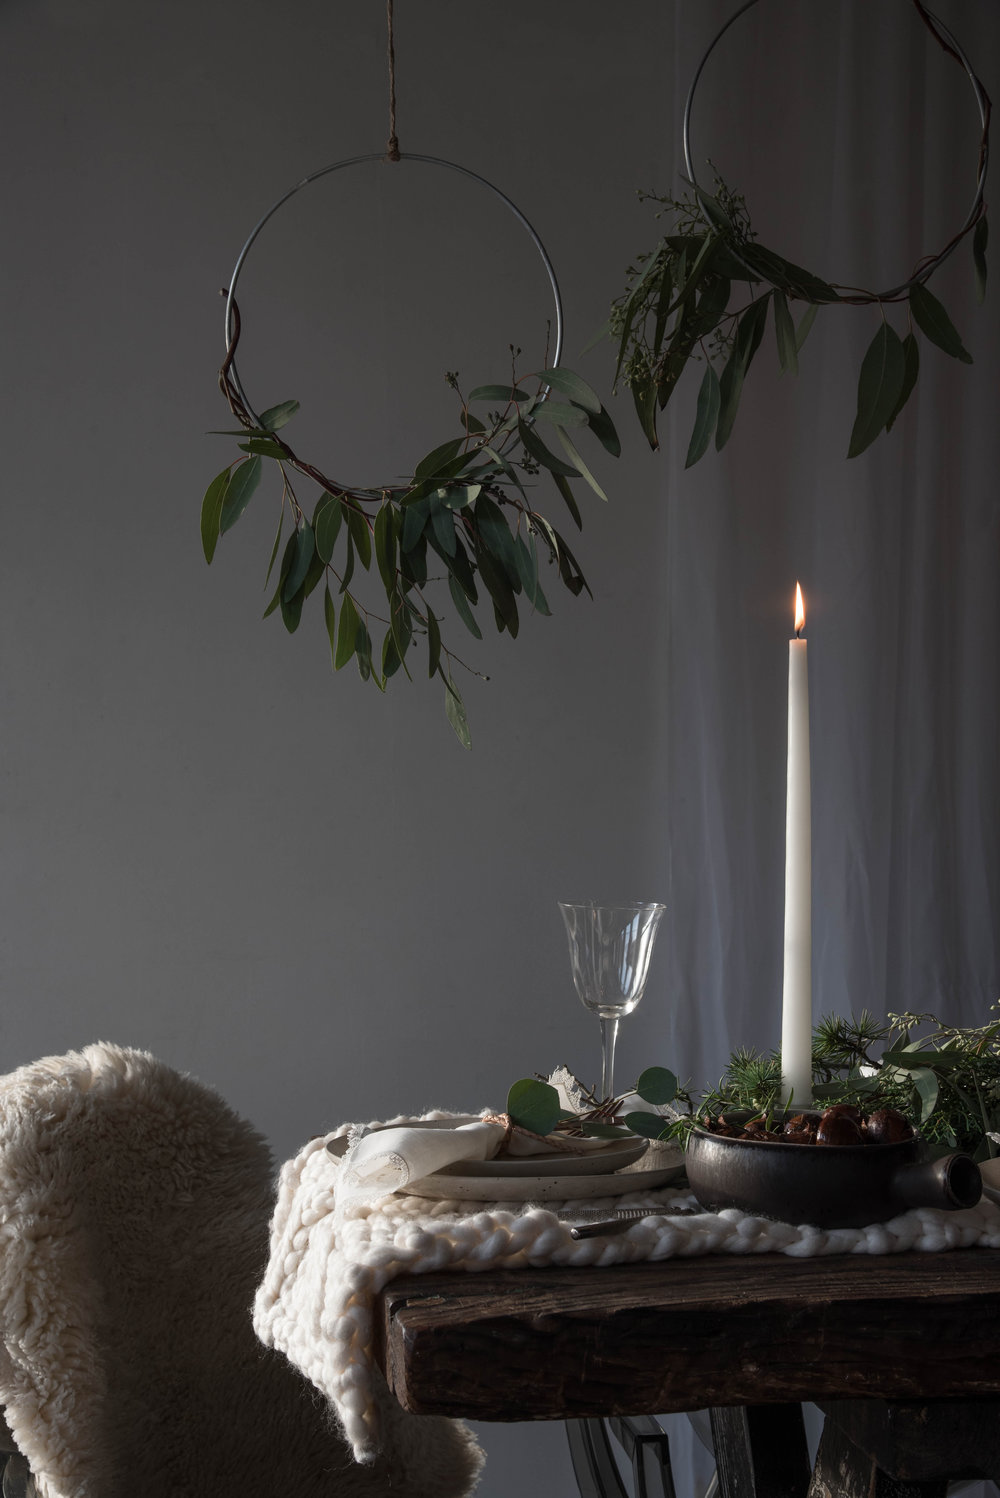 ROSE & IVY Journal Winter Light A Holiday Table Setting